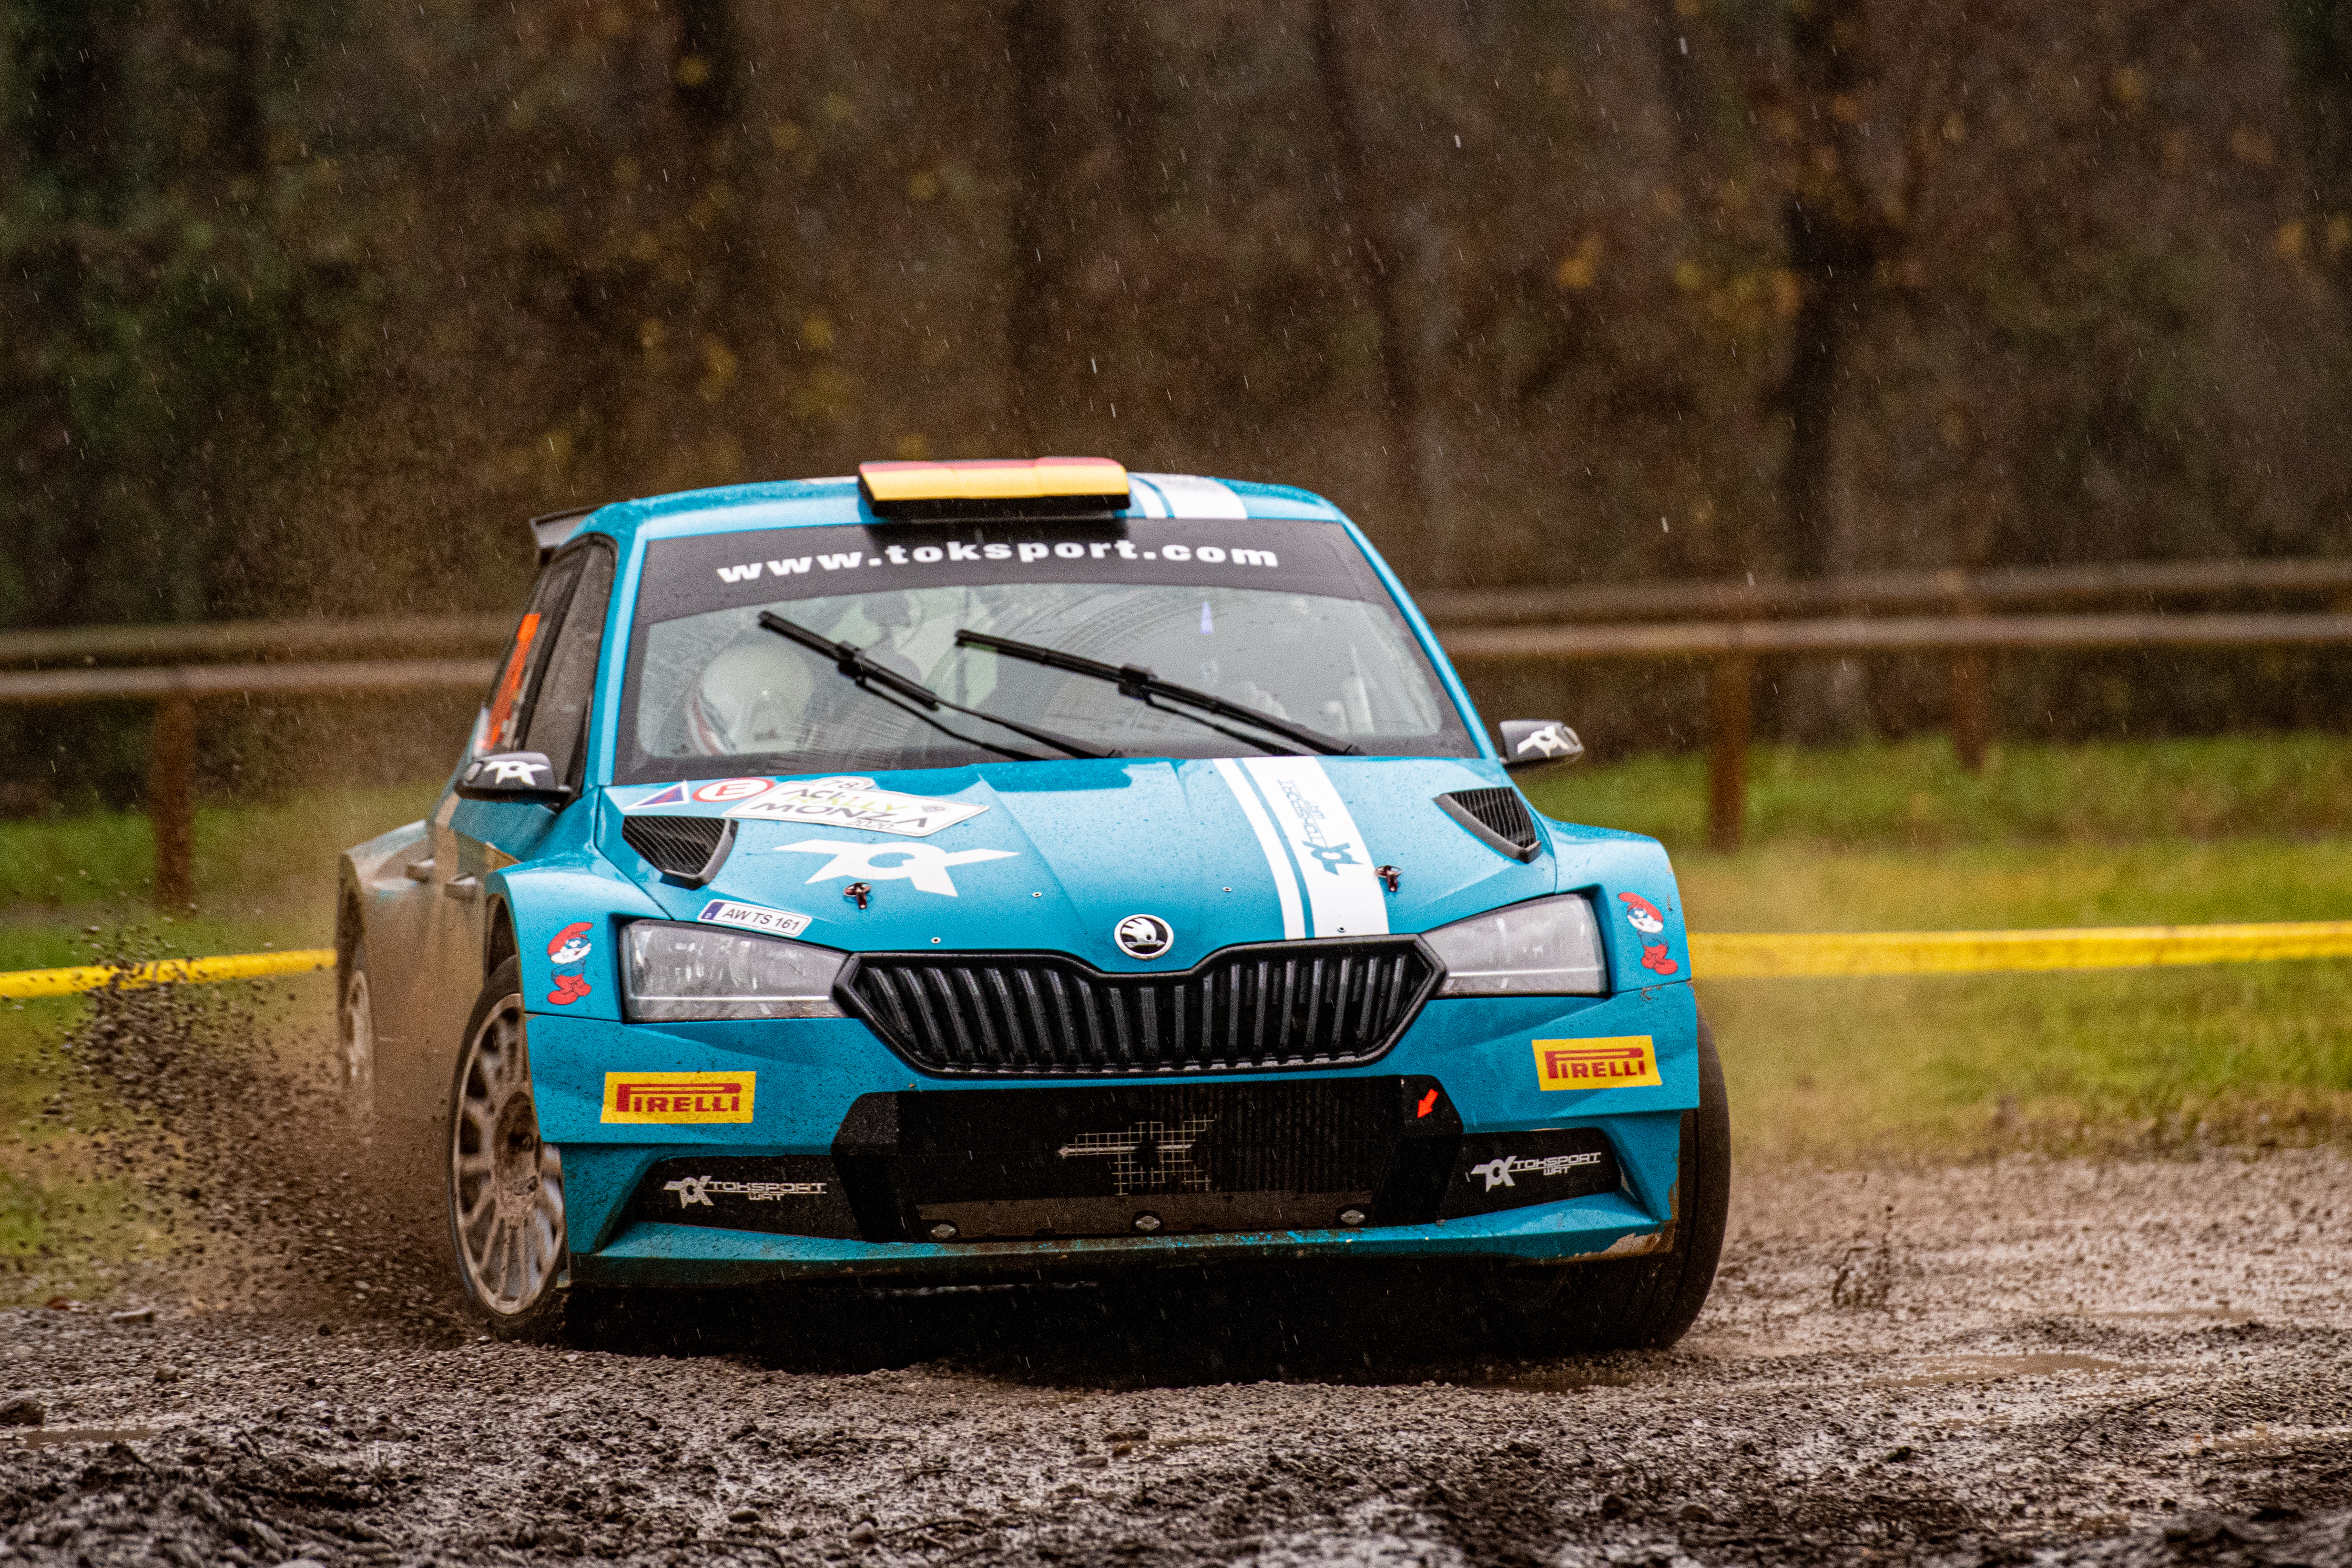 ACI Rally Monza: Clever tactics pays off as SKODA crews lead WRC2 and WRC3 after first leg - Image 6